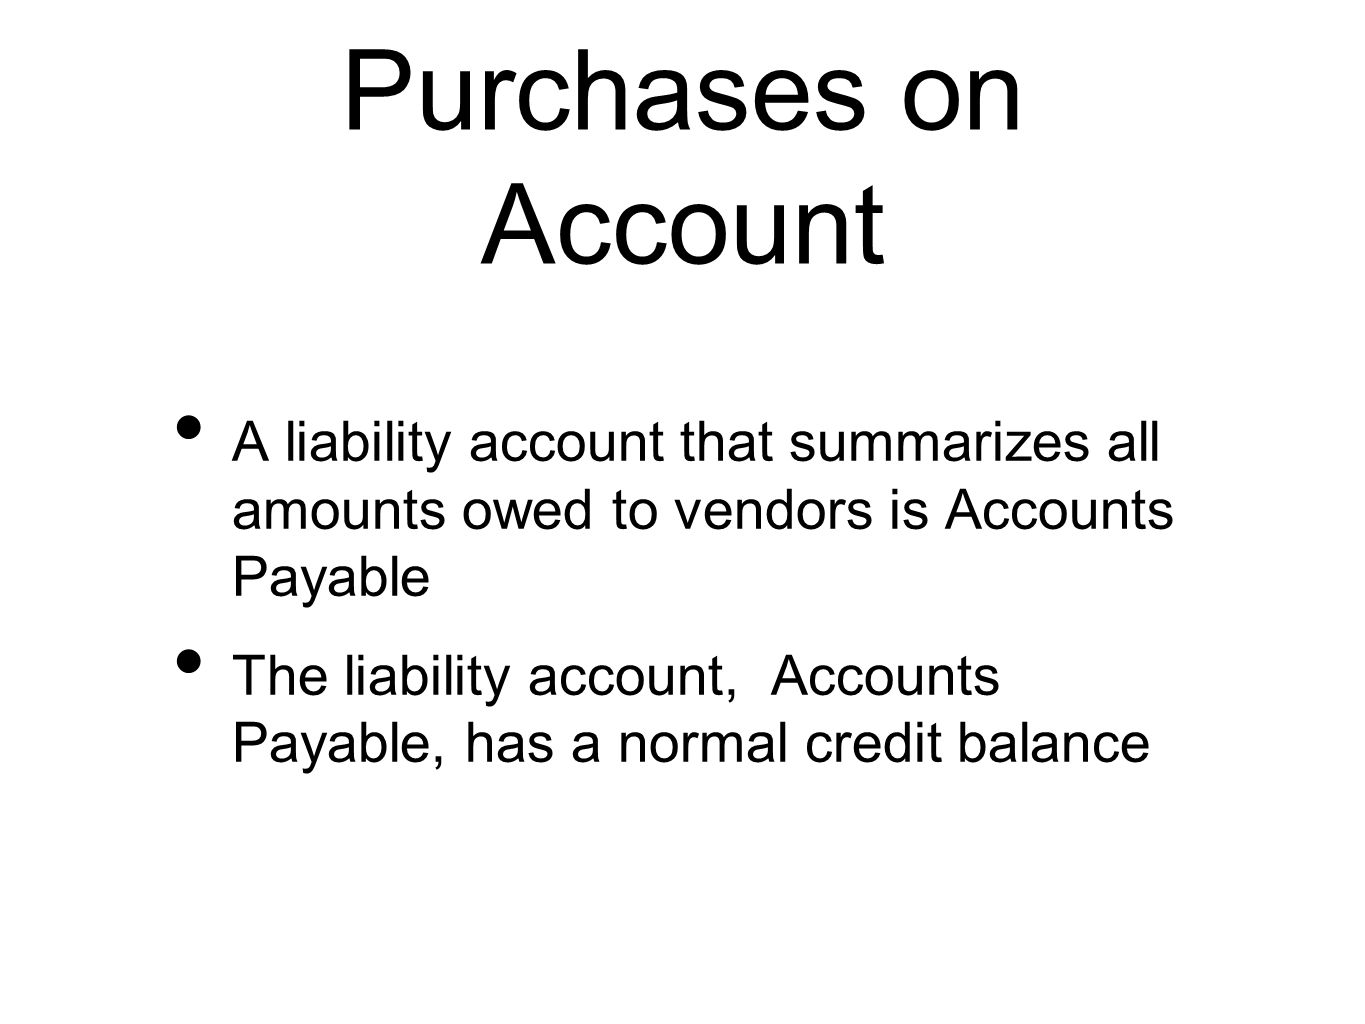 Purchases on Account A liability account that summarizes all amounts owed to vendors is Accounts Payable.